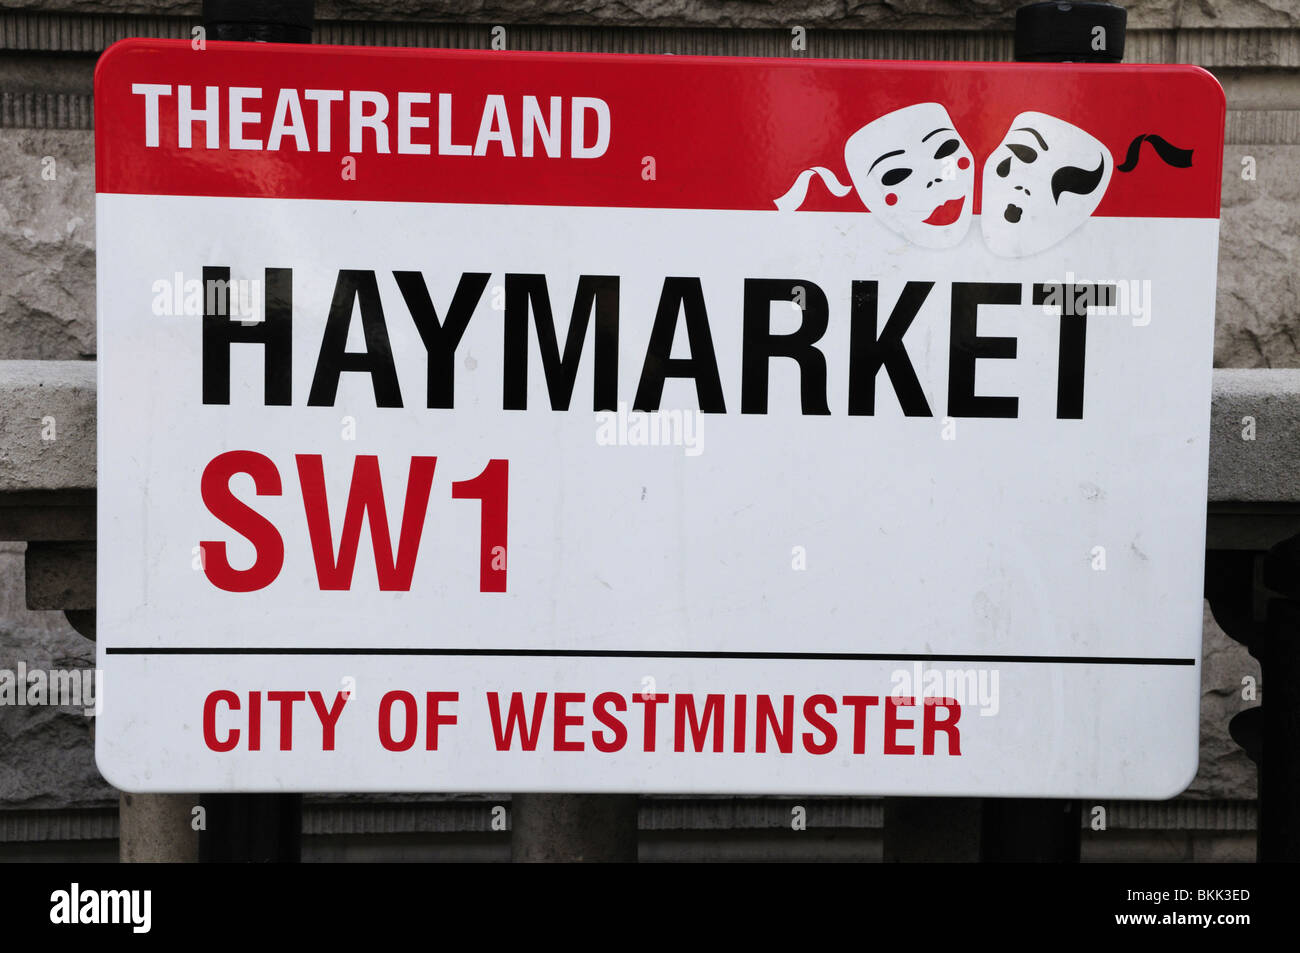 Theatreland Haymarket Street Sign, London, England, UK - Stock Image